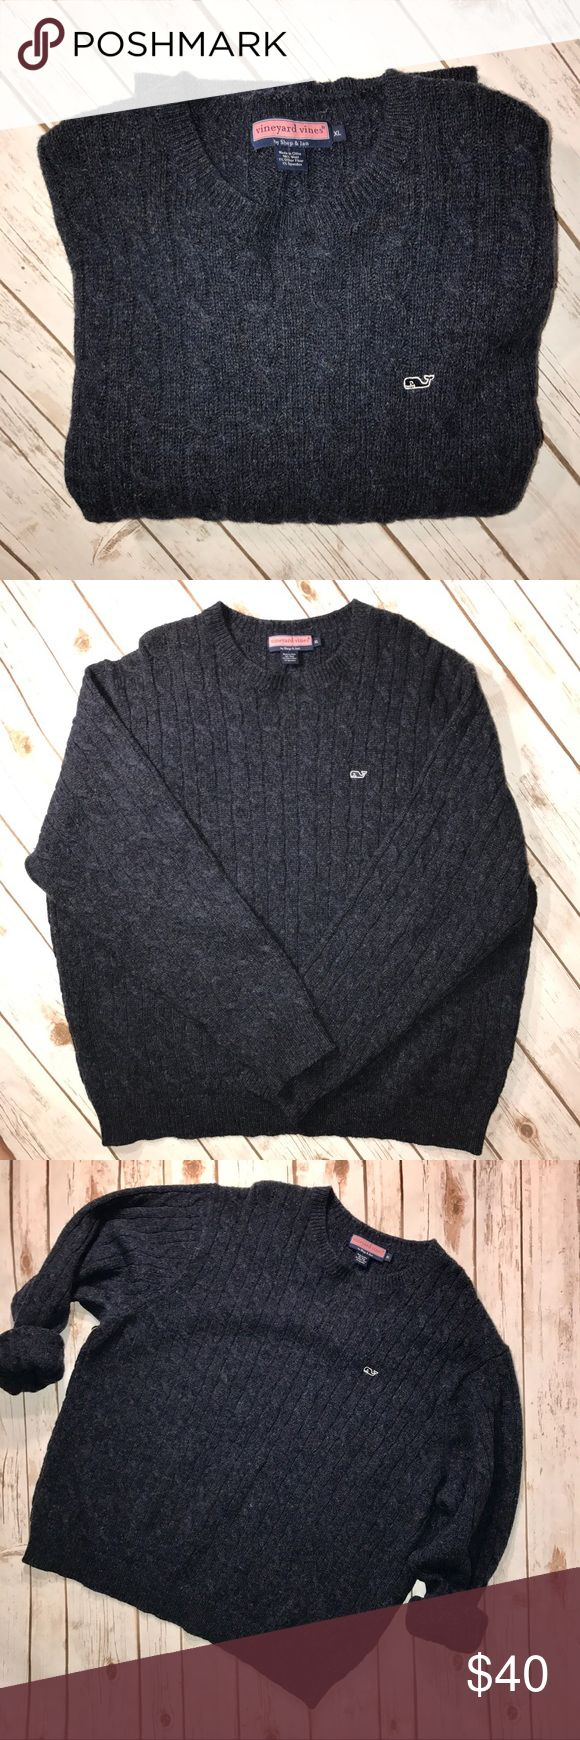 """Vineyard Vines men's XL cable knit sweater Mens Vineyard Vines dark blue cable knit sweater size XL. In great condition. No stains or rips. Measurements for flat lay: Shoulder to Shoulder (22"""") Armpit to Armpit (27"""") Top to Bottom (29"""") Sleeve Length (27"""") Vineyard Vines Sweaters Crewneck"""